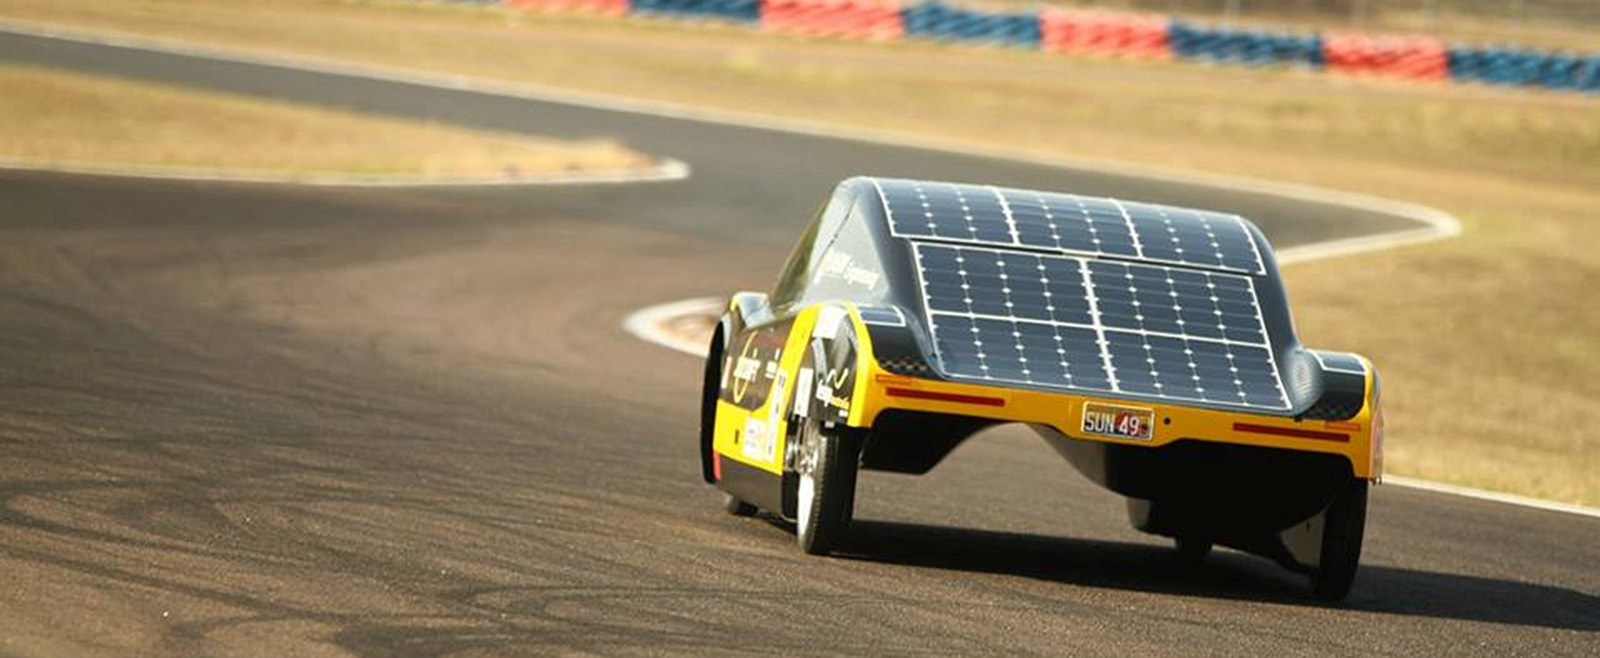 Sunswift Eve The Solar Powered Car Welcome To Skytech Info